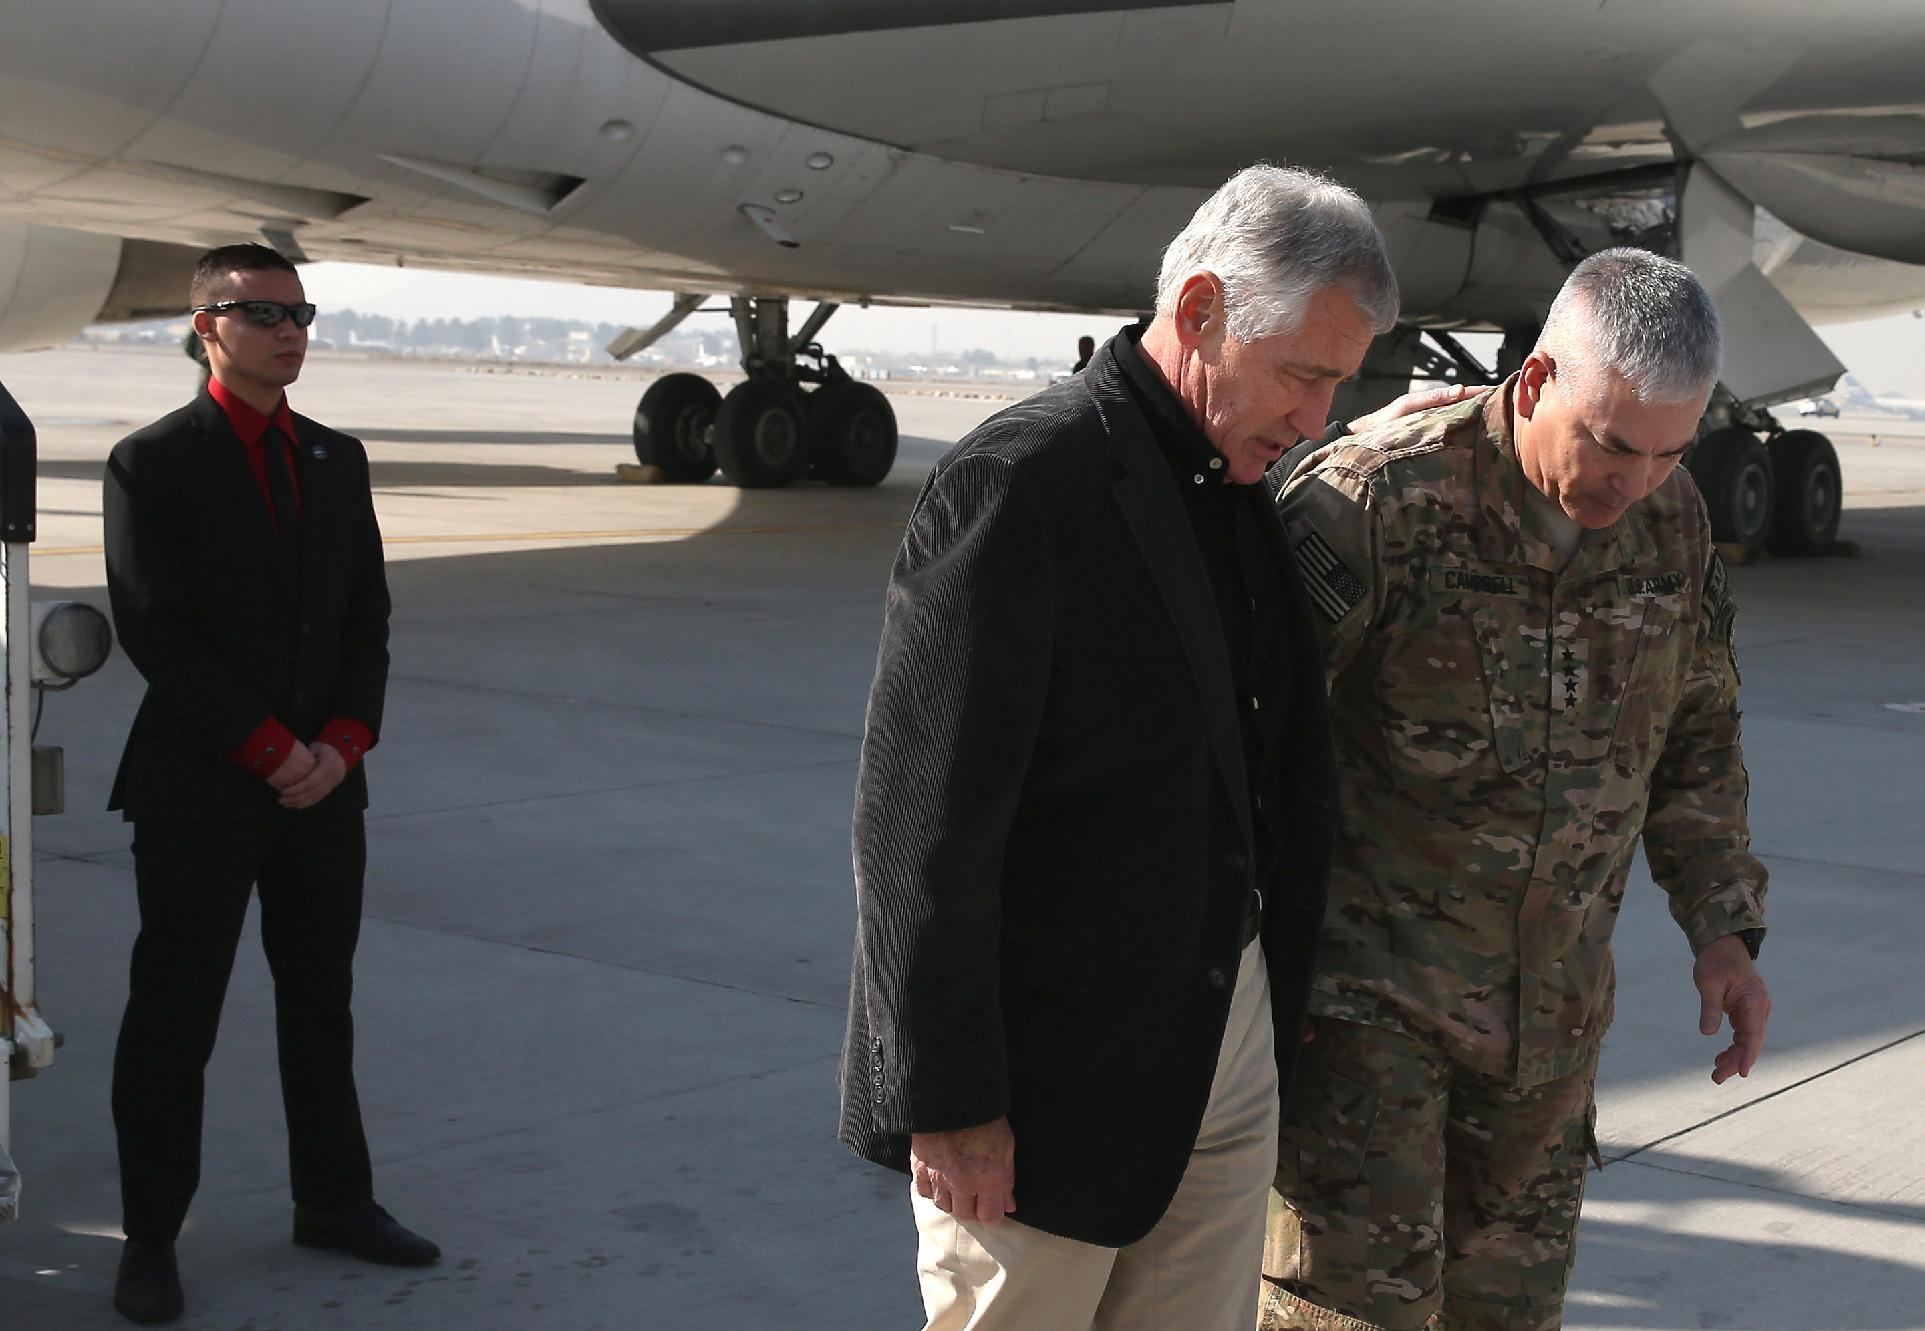 US Secretary of Defense, Chuck Hagel (C) talks with General John Campbell (R) on his arrival in Kabul on December 6, 2014 (AFP Photo/Mark Wilson)